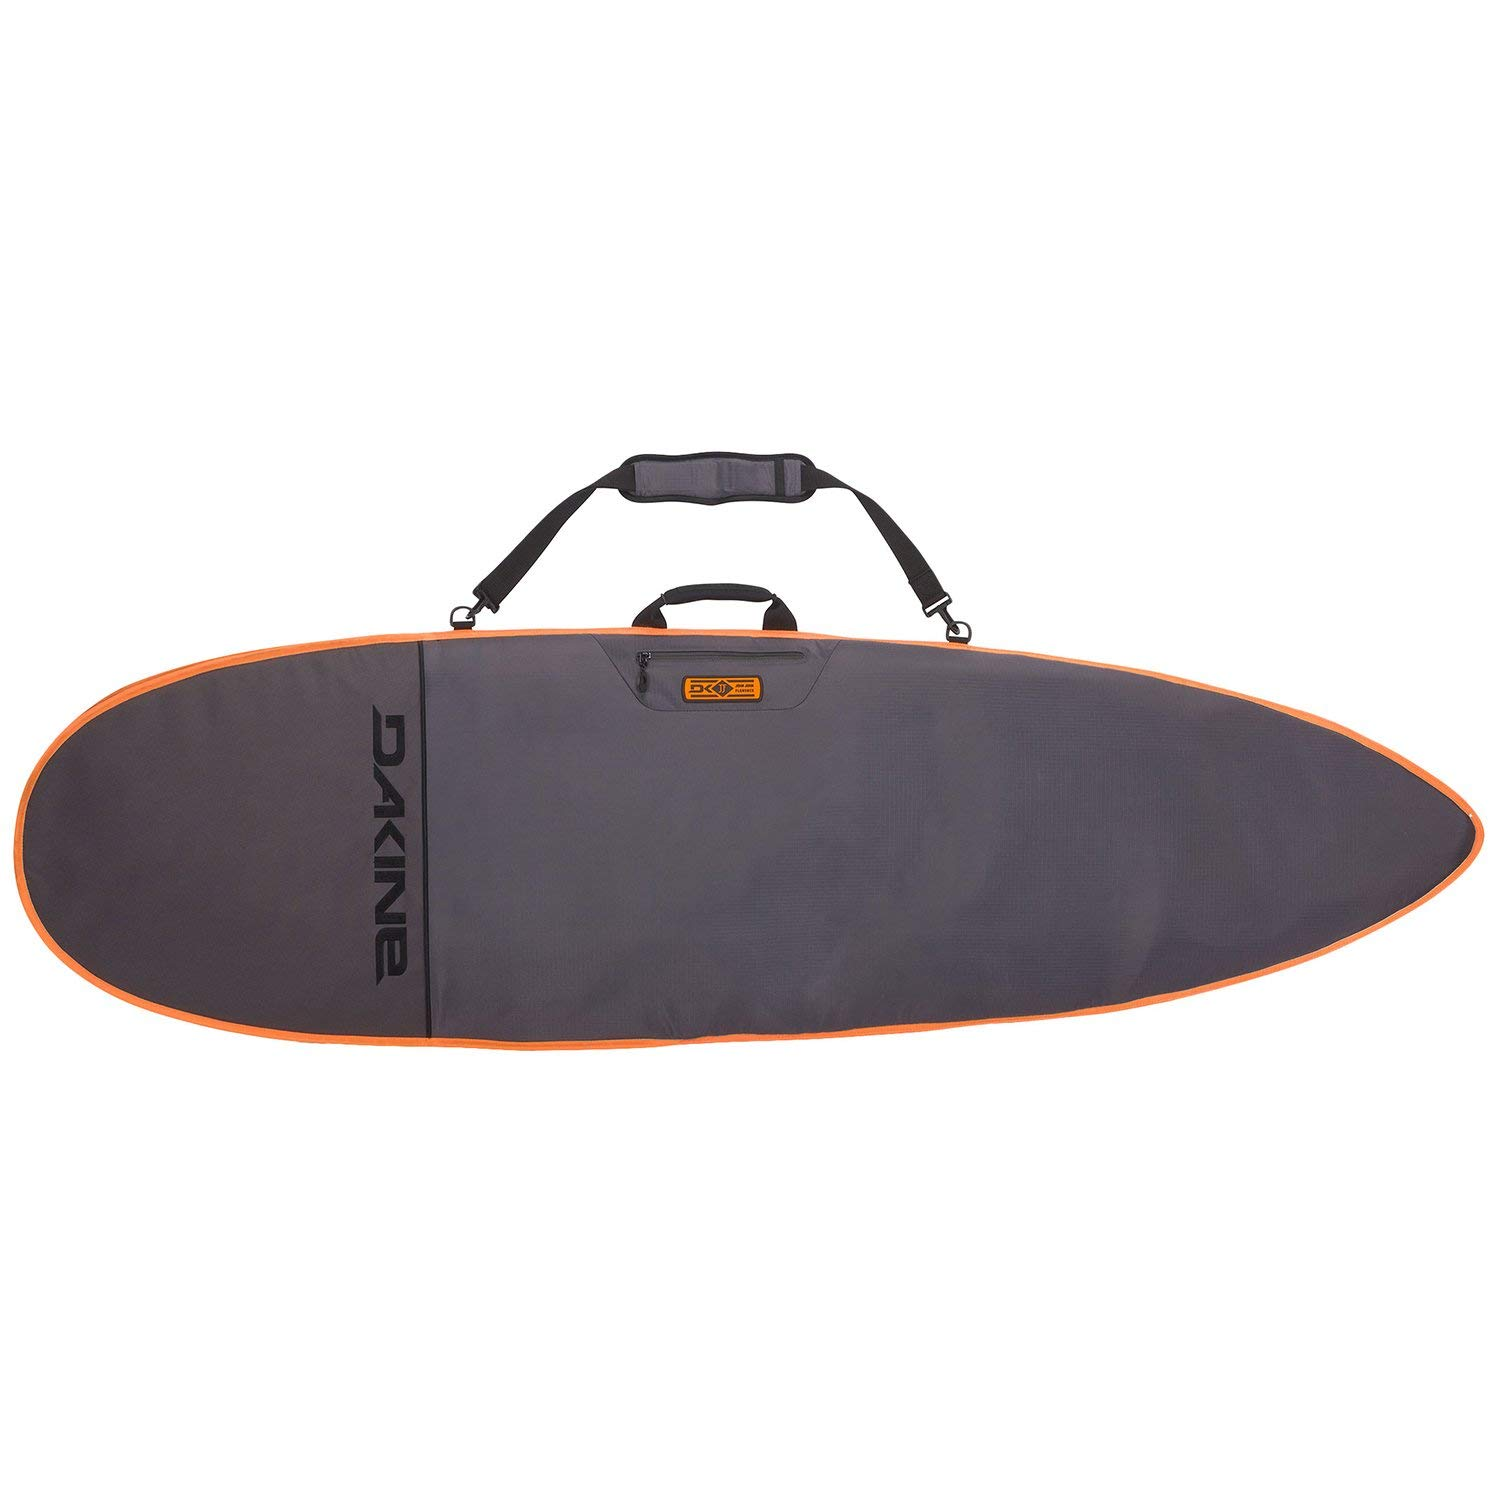 Dakine John John Florence Daylight Thruster Surfboard Bag Carbon, 6ft 10in x 23.5in by Dakine